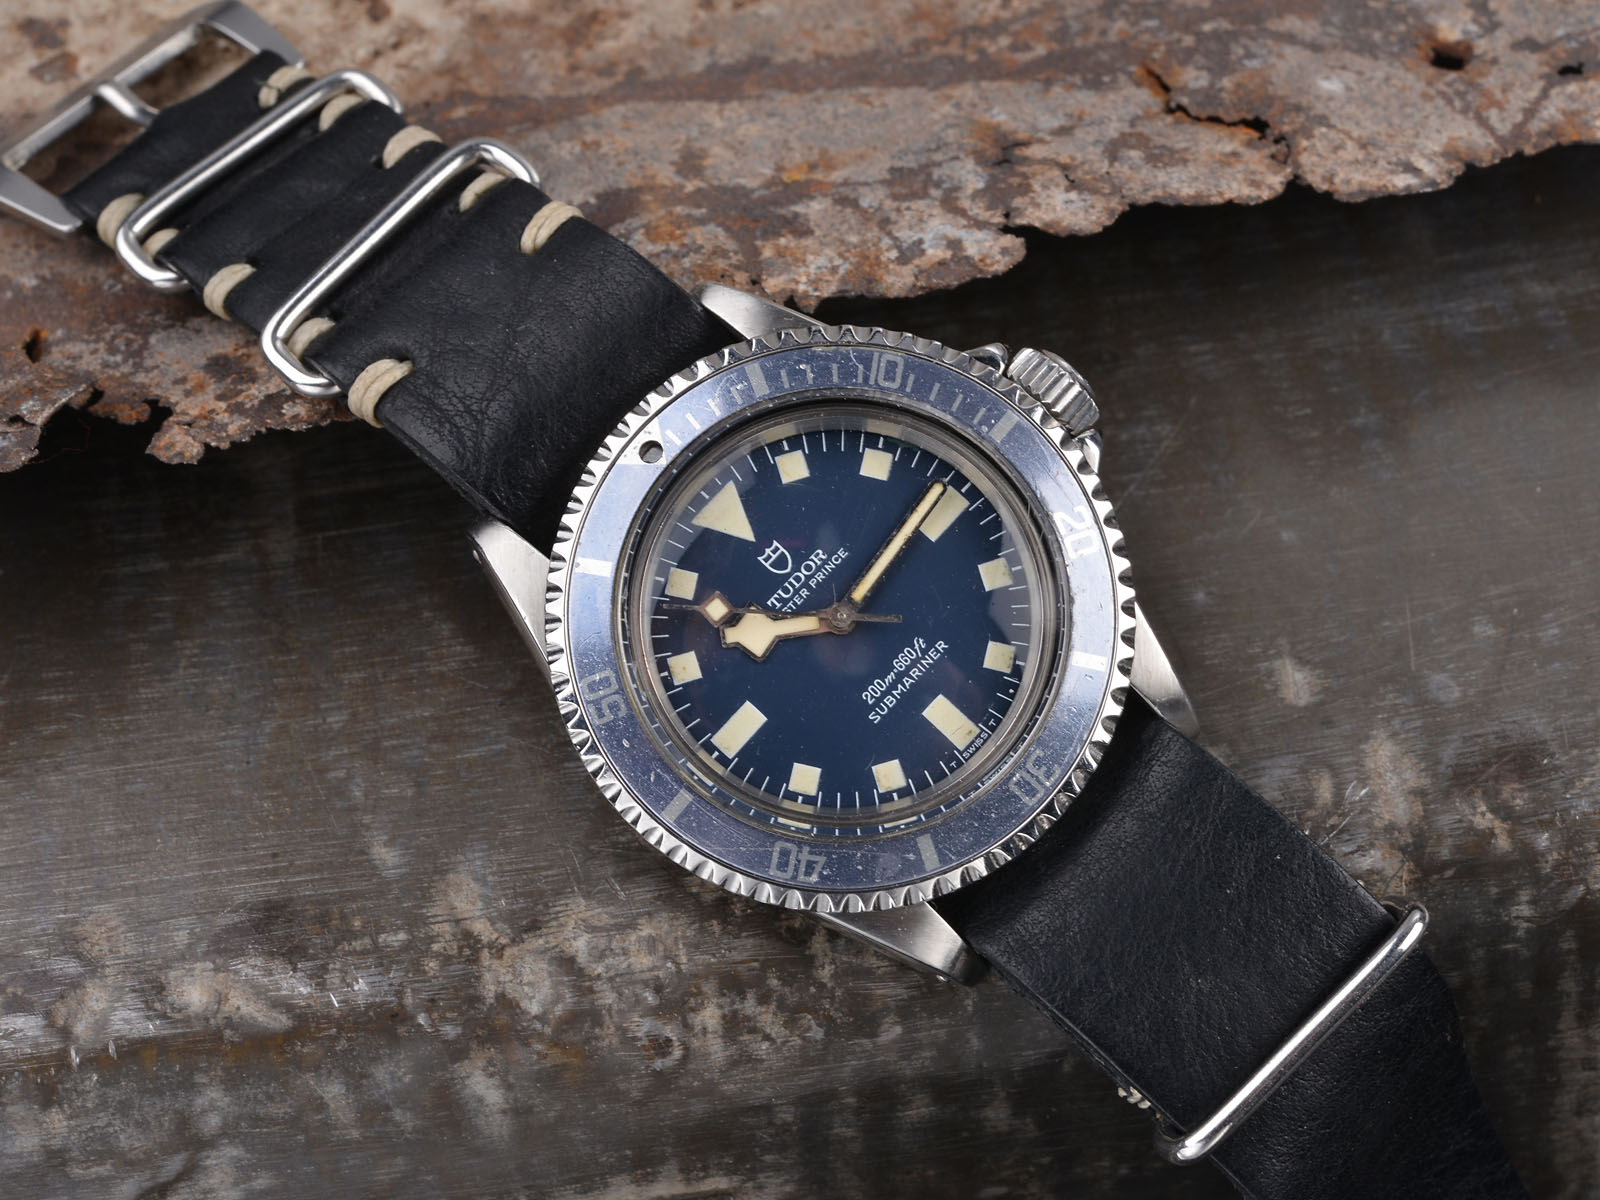 Market watch ing dive watches everywhere wound for - Tudor dive watch ...